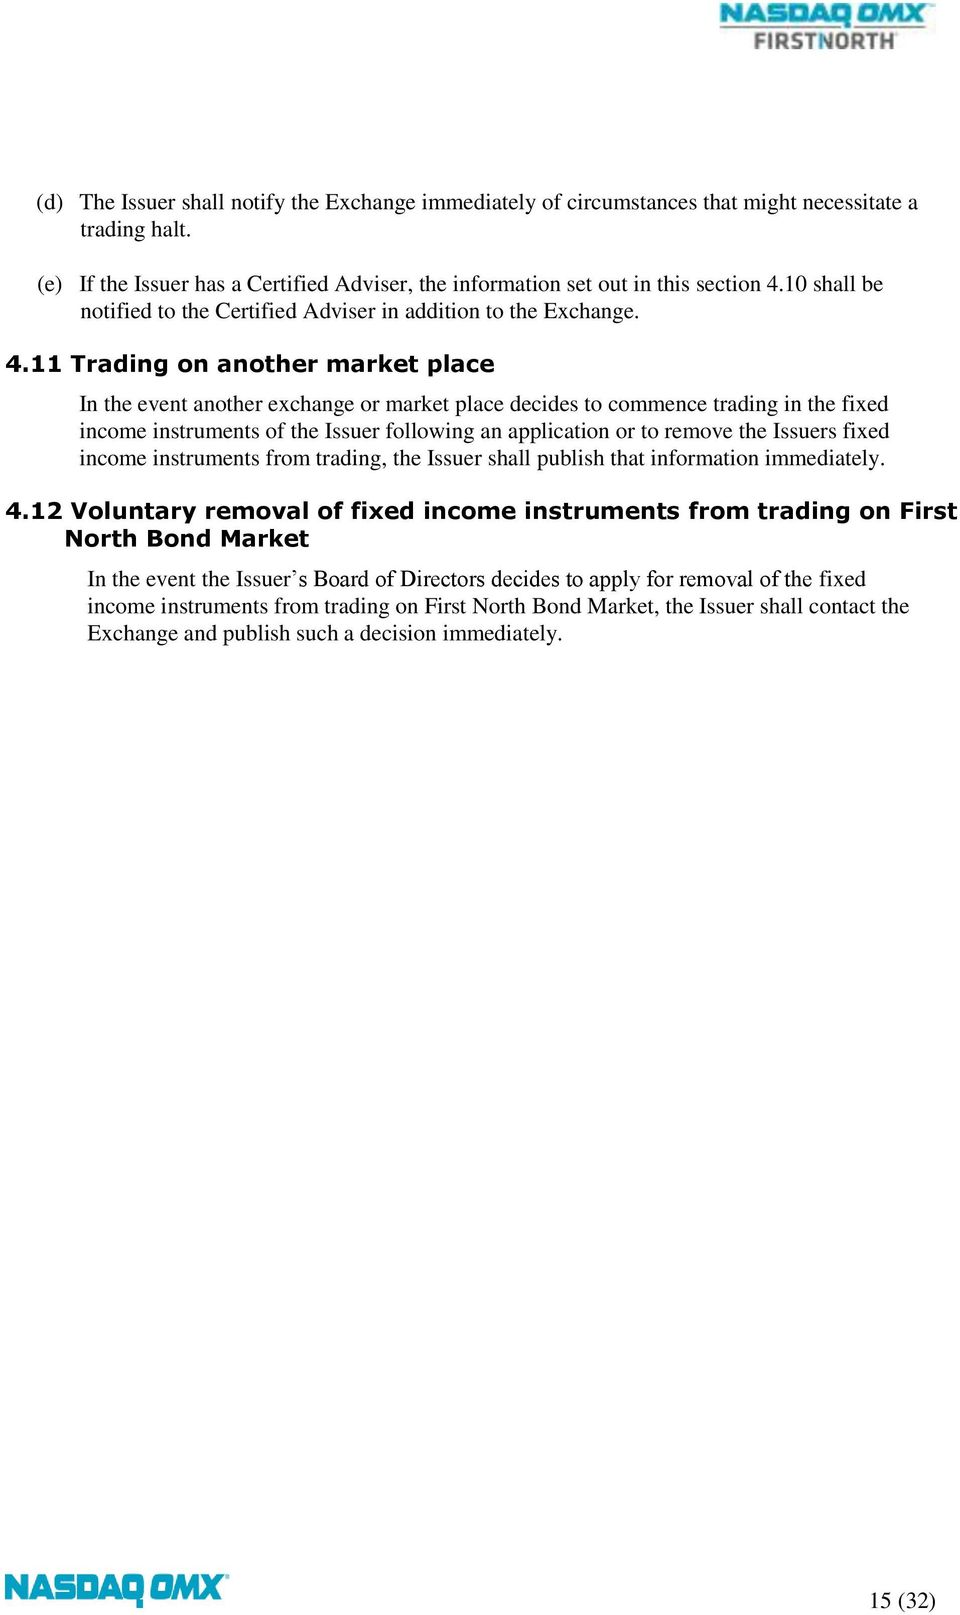 11 Trading on another market place In the event another exchange or market place decides to commence trading in the fixed income instruments of the Issuer following an application or to remove the